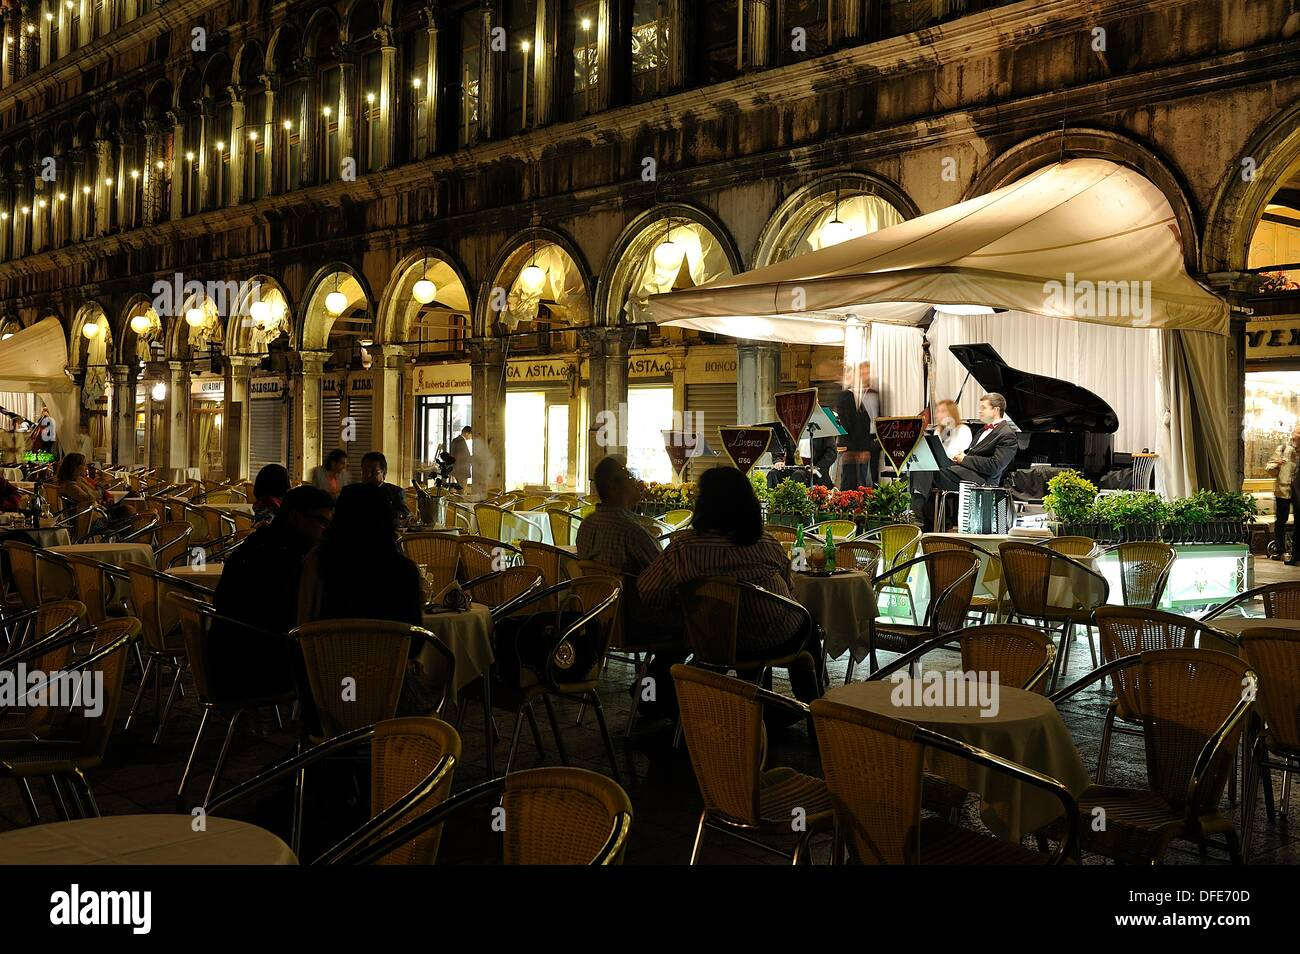 People listening to music at a piano bar (Caffe´ Lavena) in